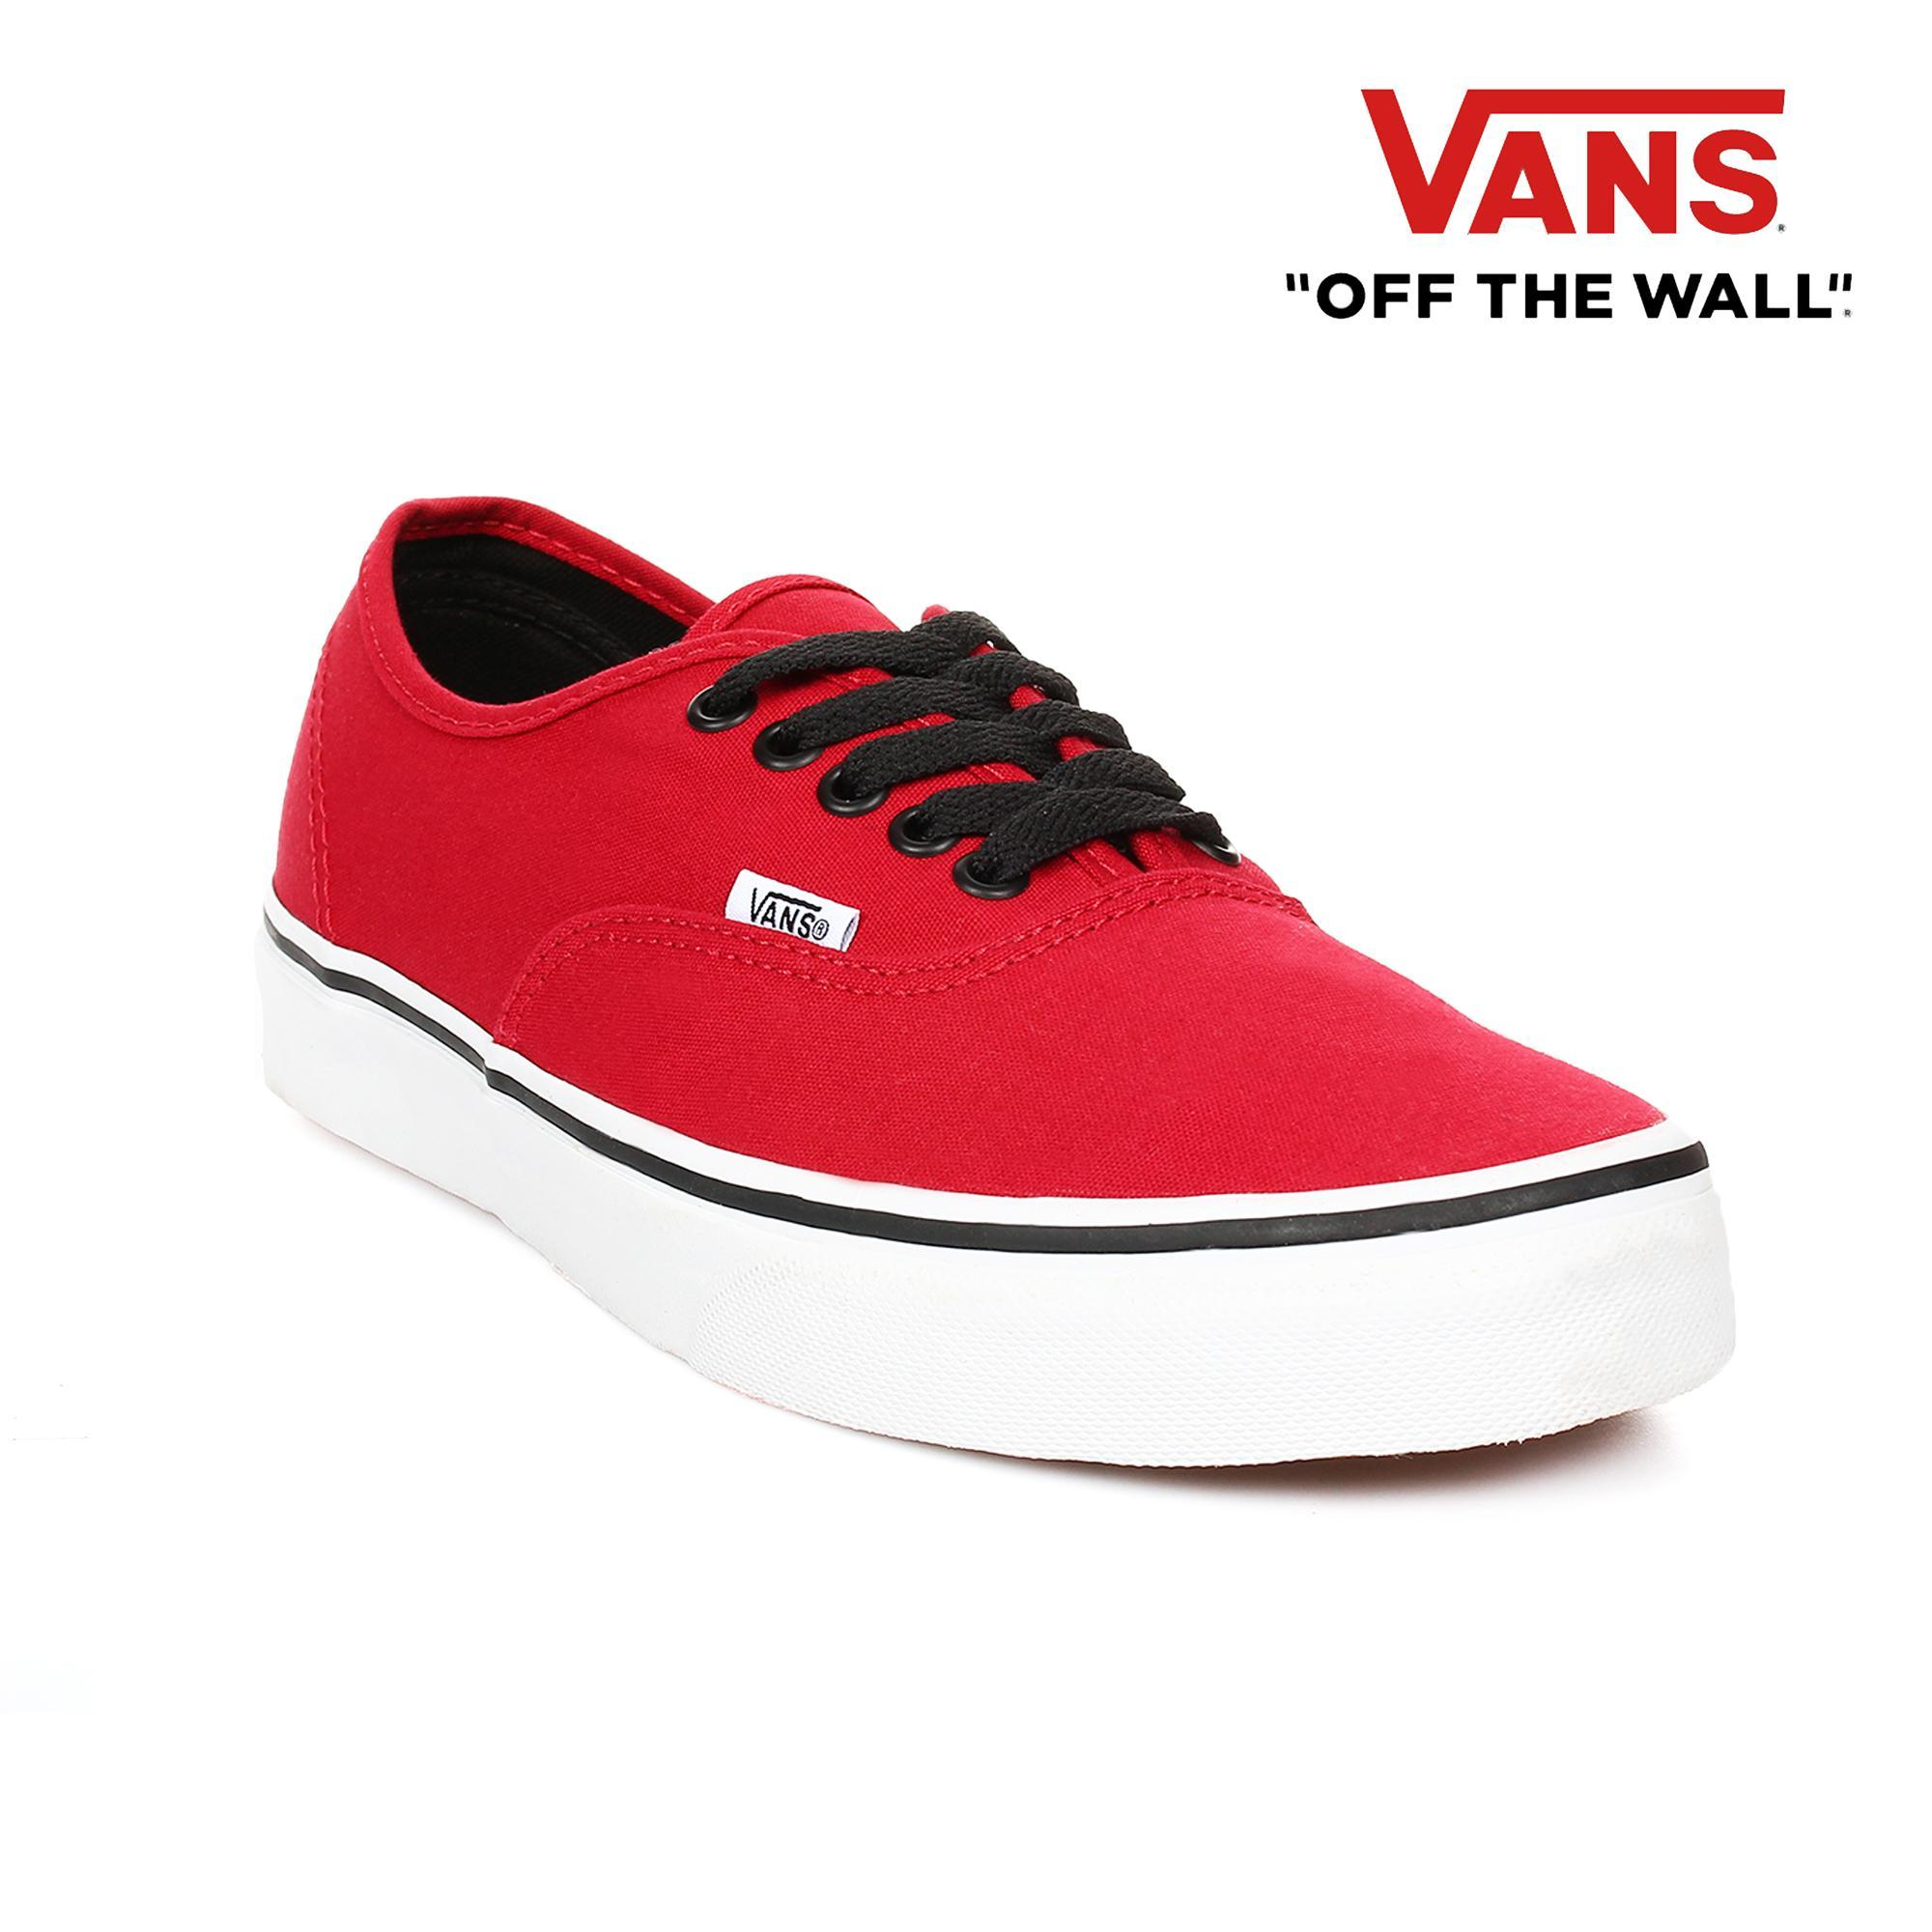 f6faf3714e44 ... fast delivery 5ce2f 71d7c Vans Mens Authentic Sneakers (Chili Pepper  Black) ...